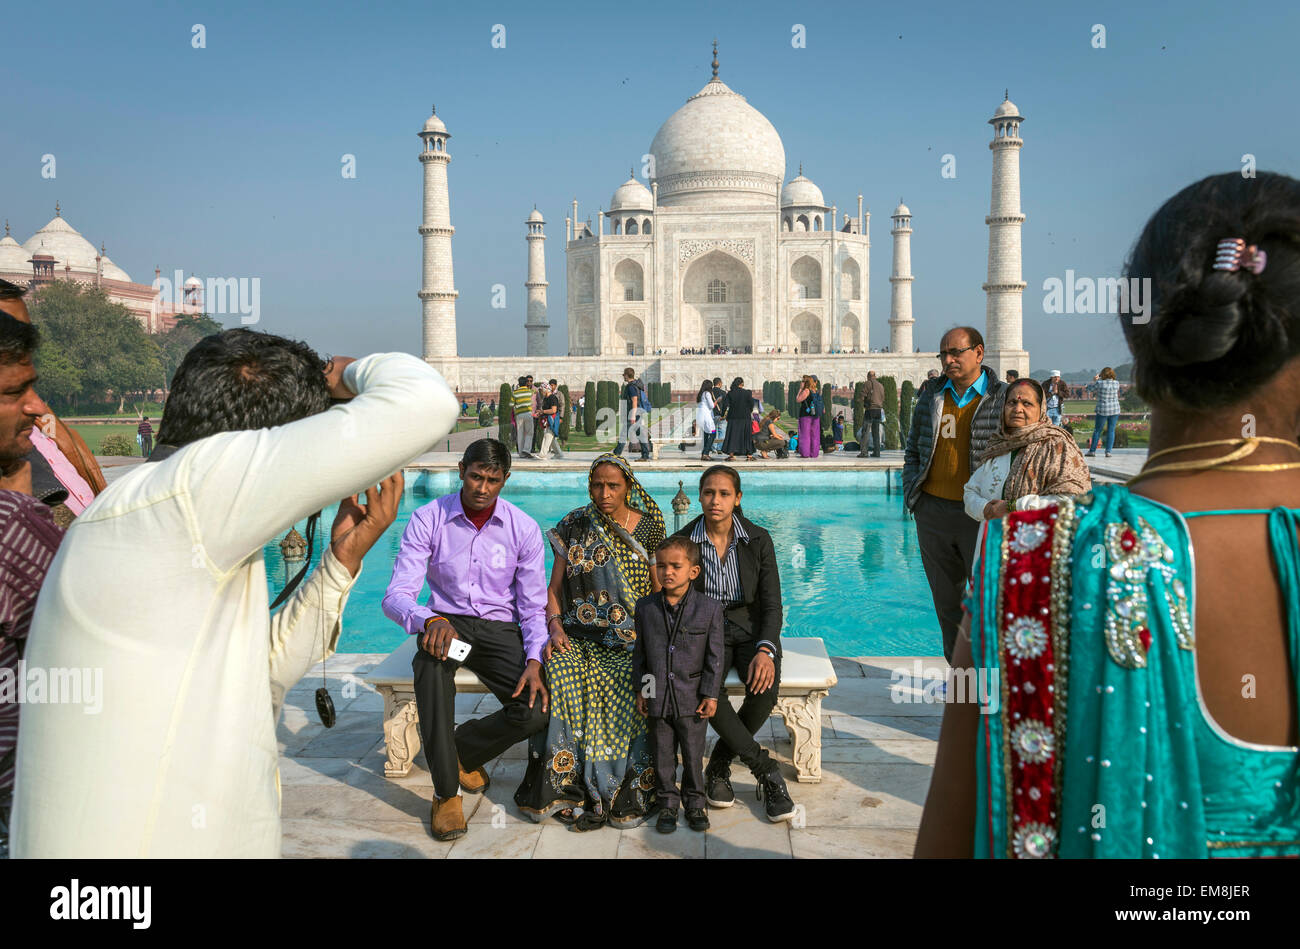 An Indian family being photographed in front of The Taj Mahal, Agra, India - Stock Image